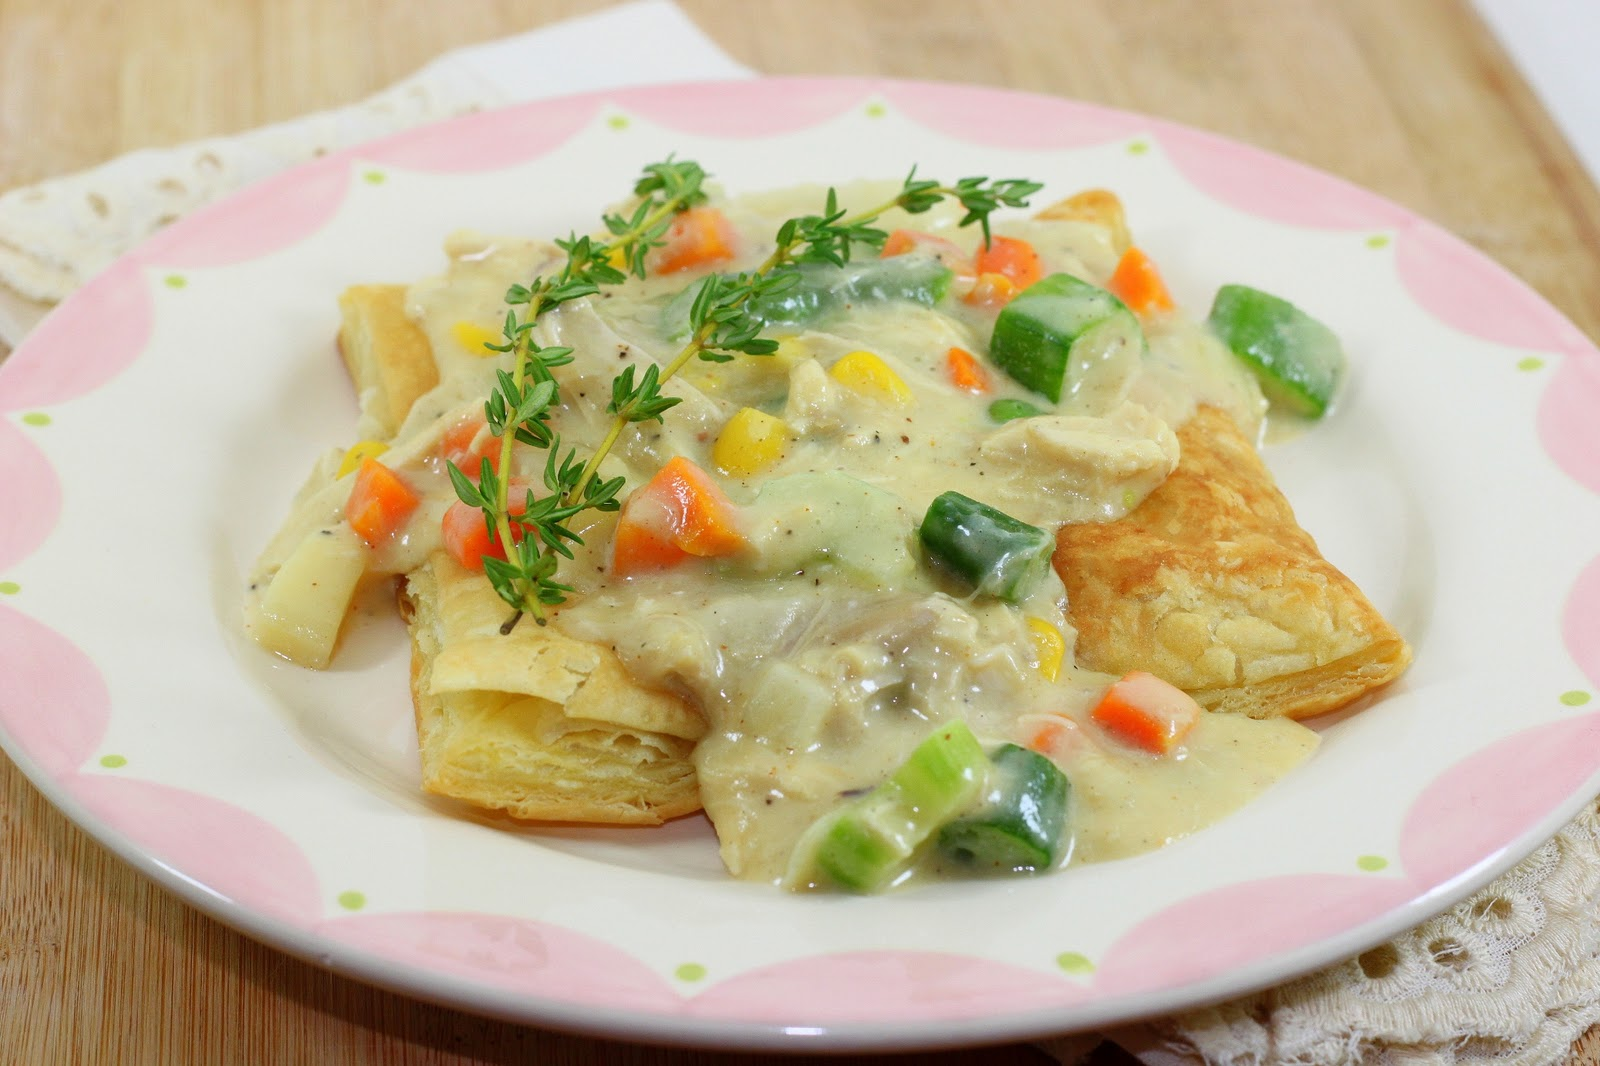 Dalia's Delights: Inside Out Chicken Pot Pie